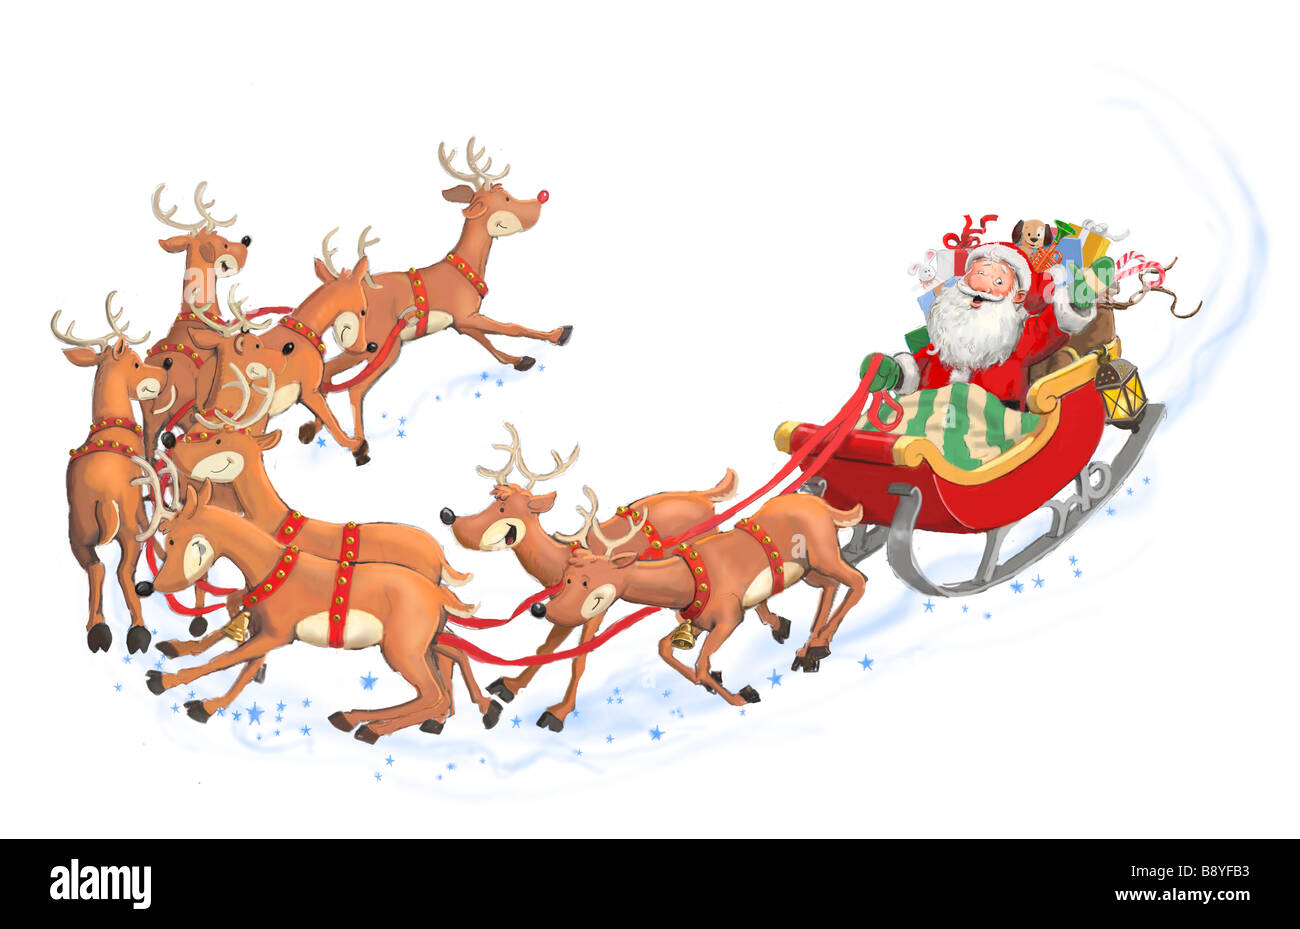 painted illustration with santa in his sleigh stock photo